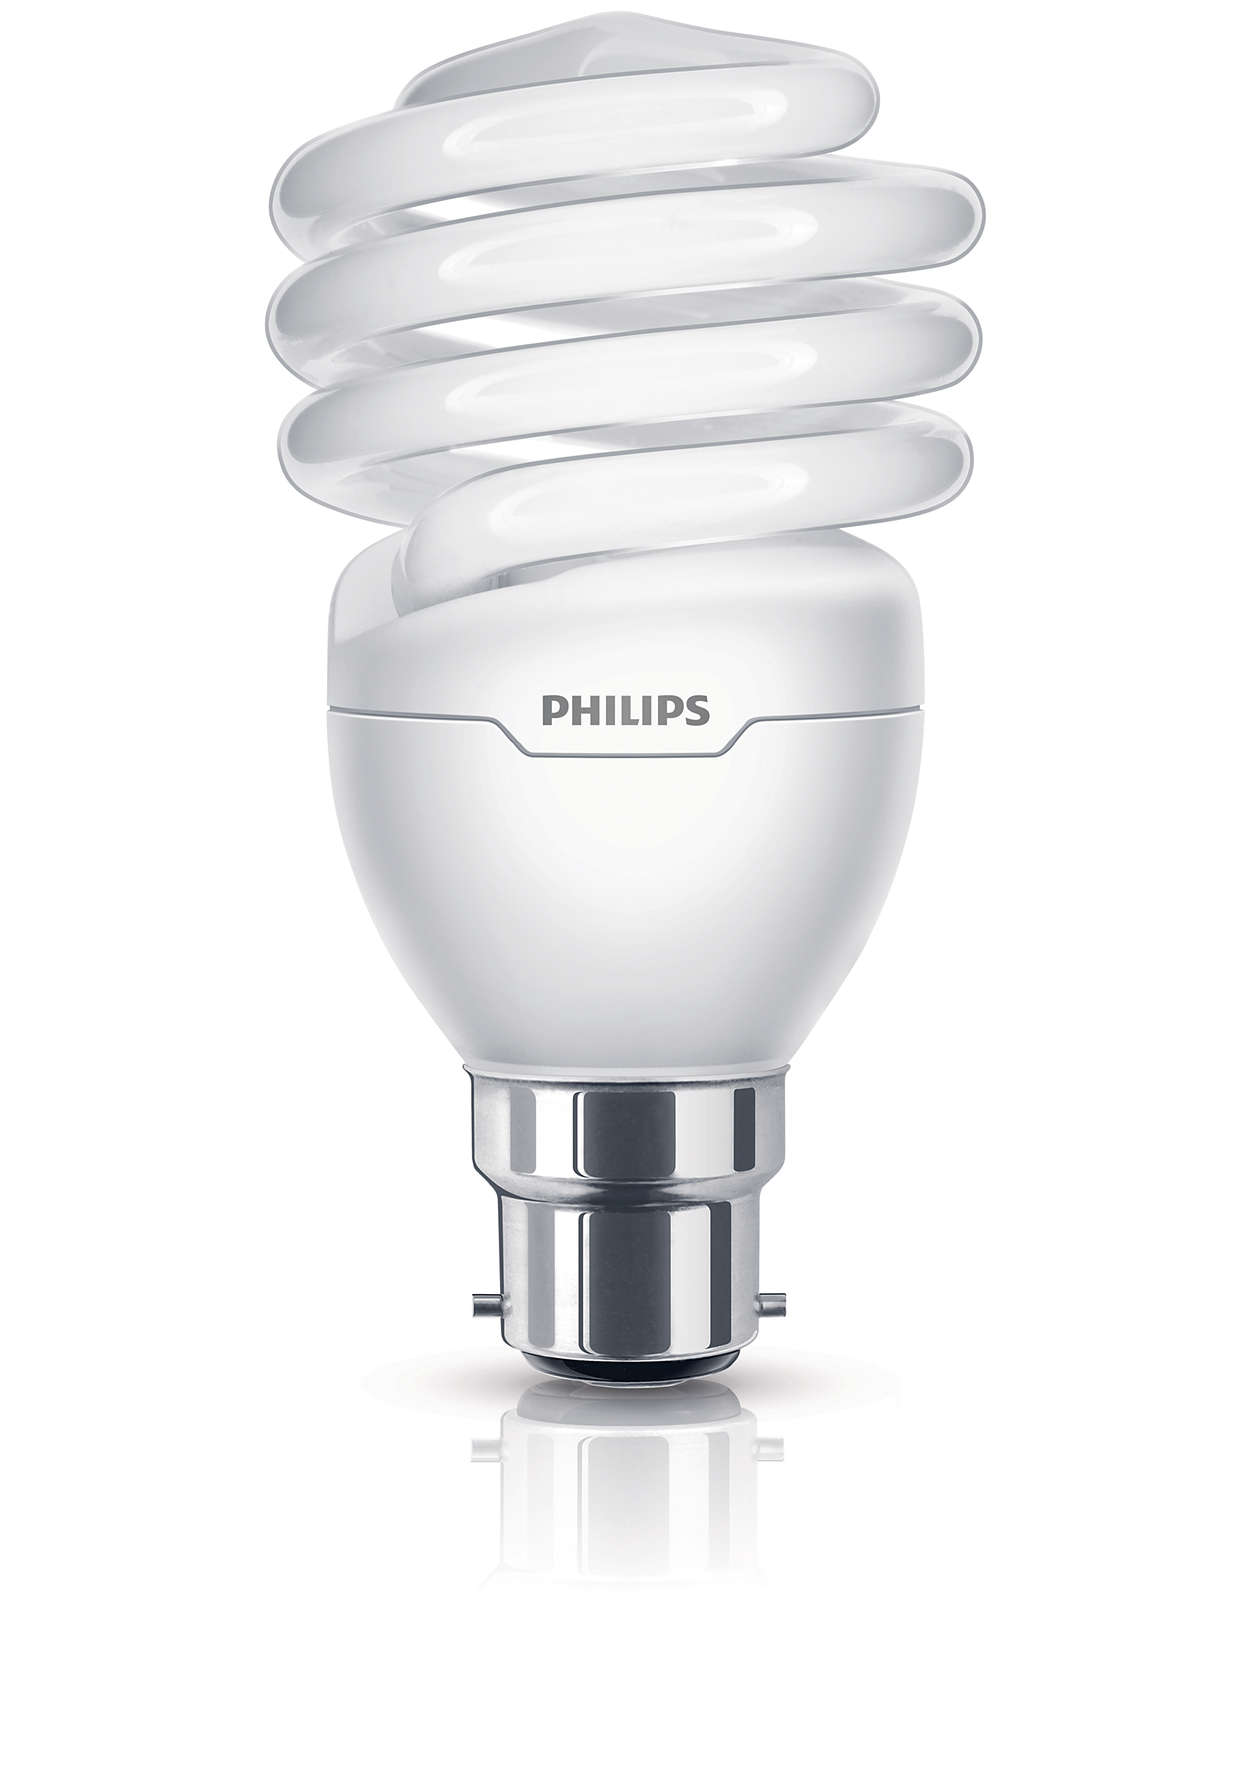 Tornado spiral energy saving bulb 8718291679226 philips Efficient light bulbs